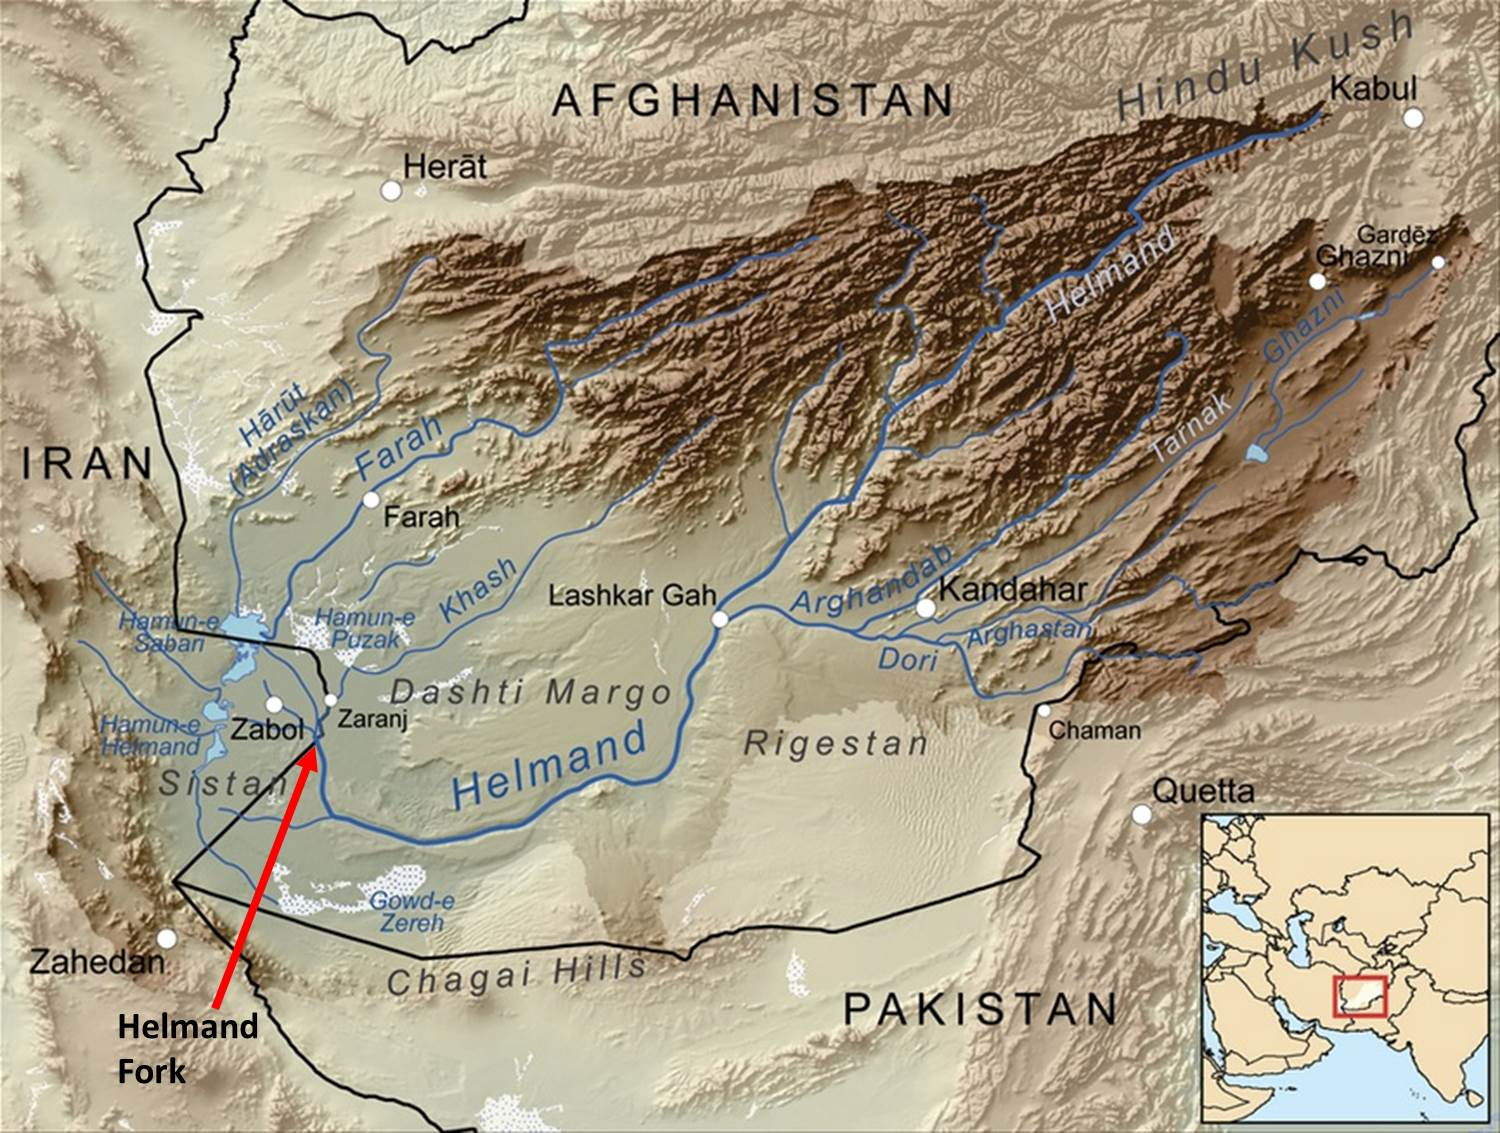 Helmand River Map